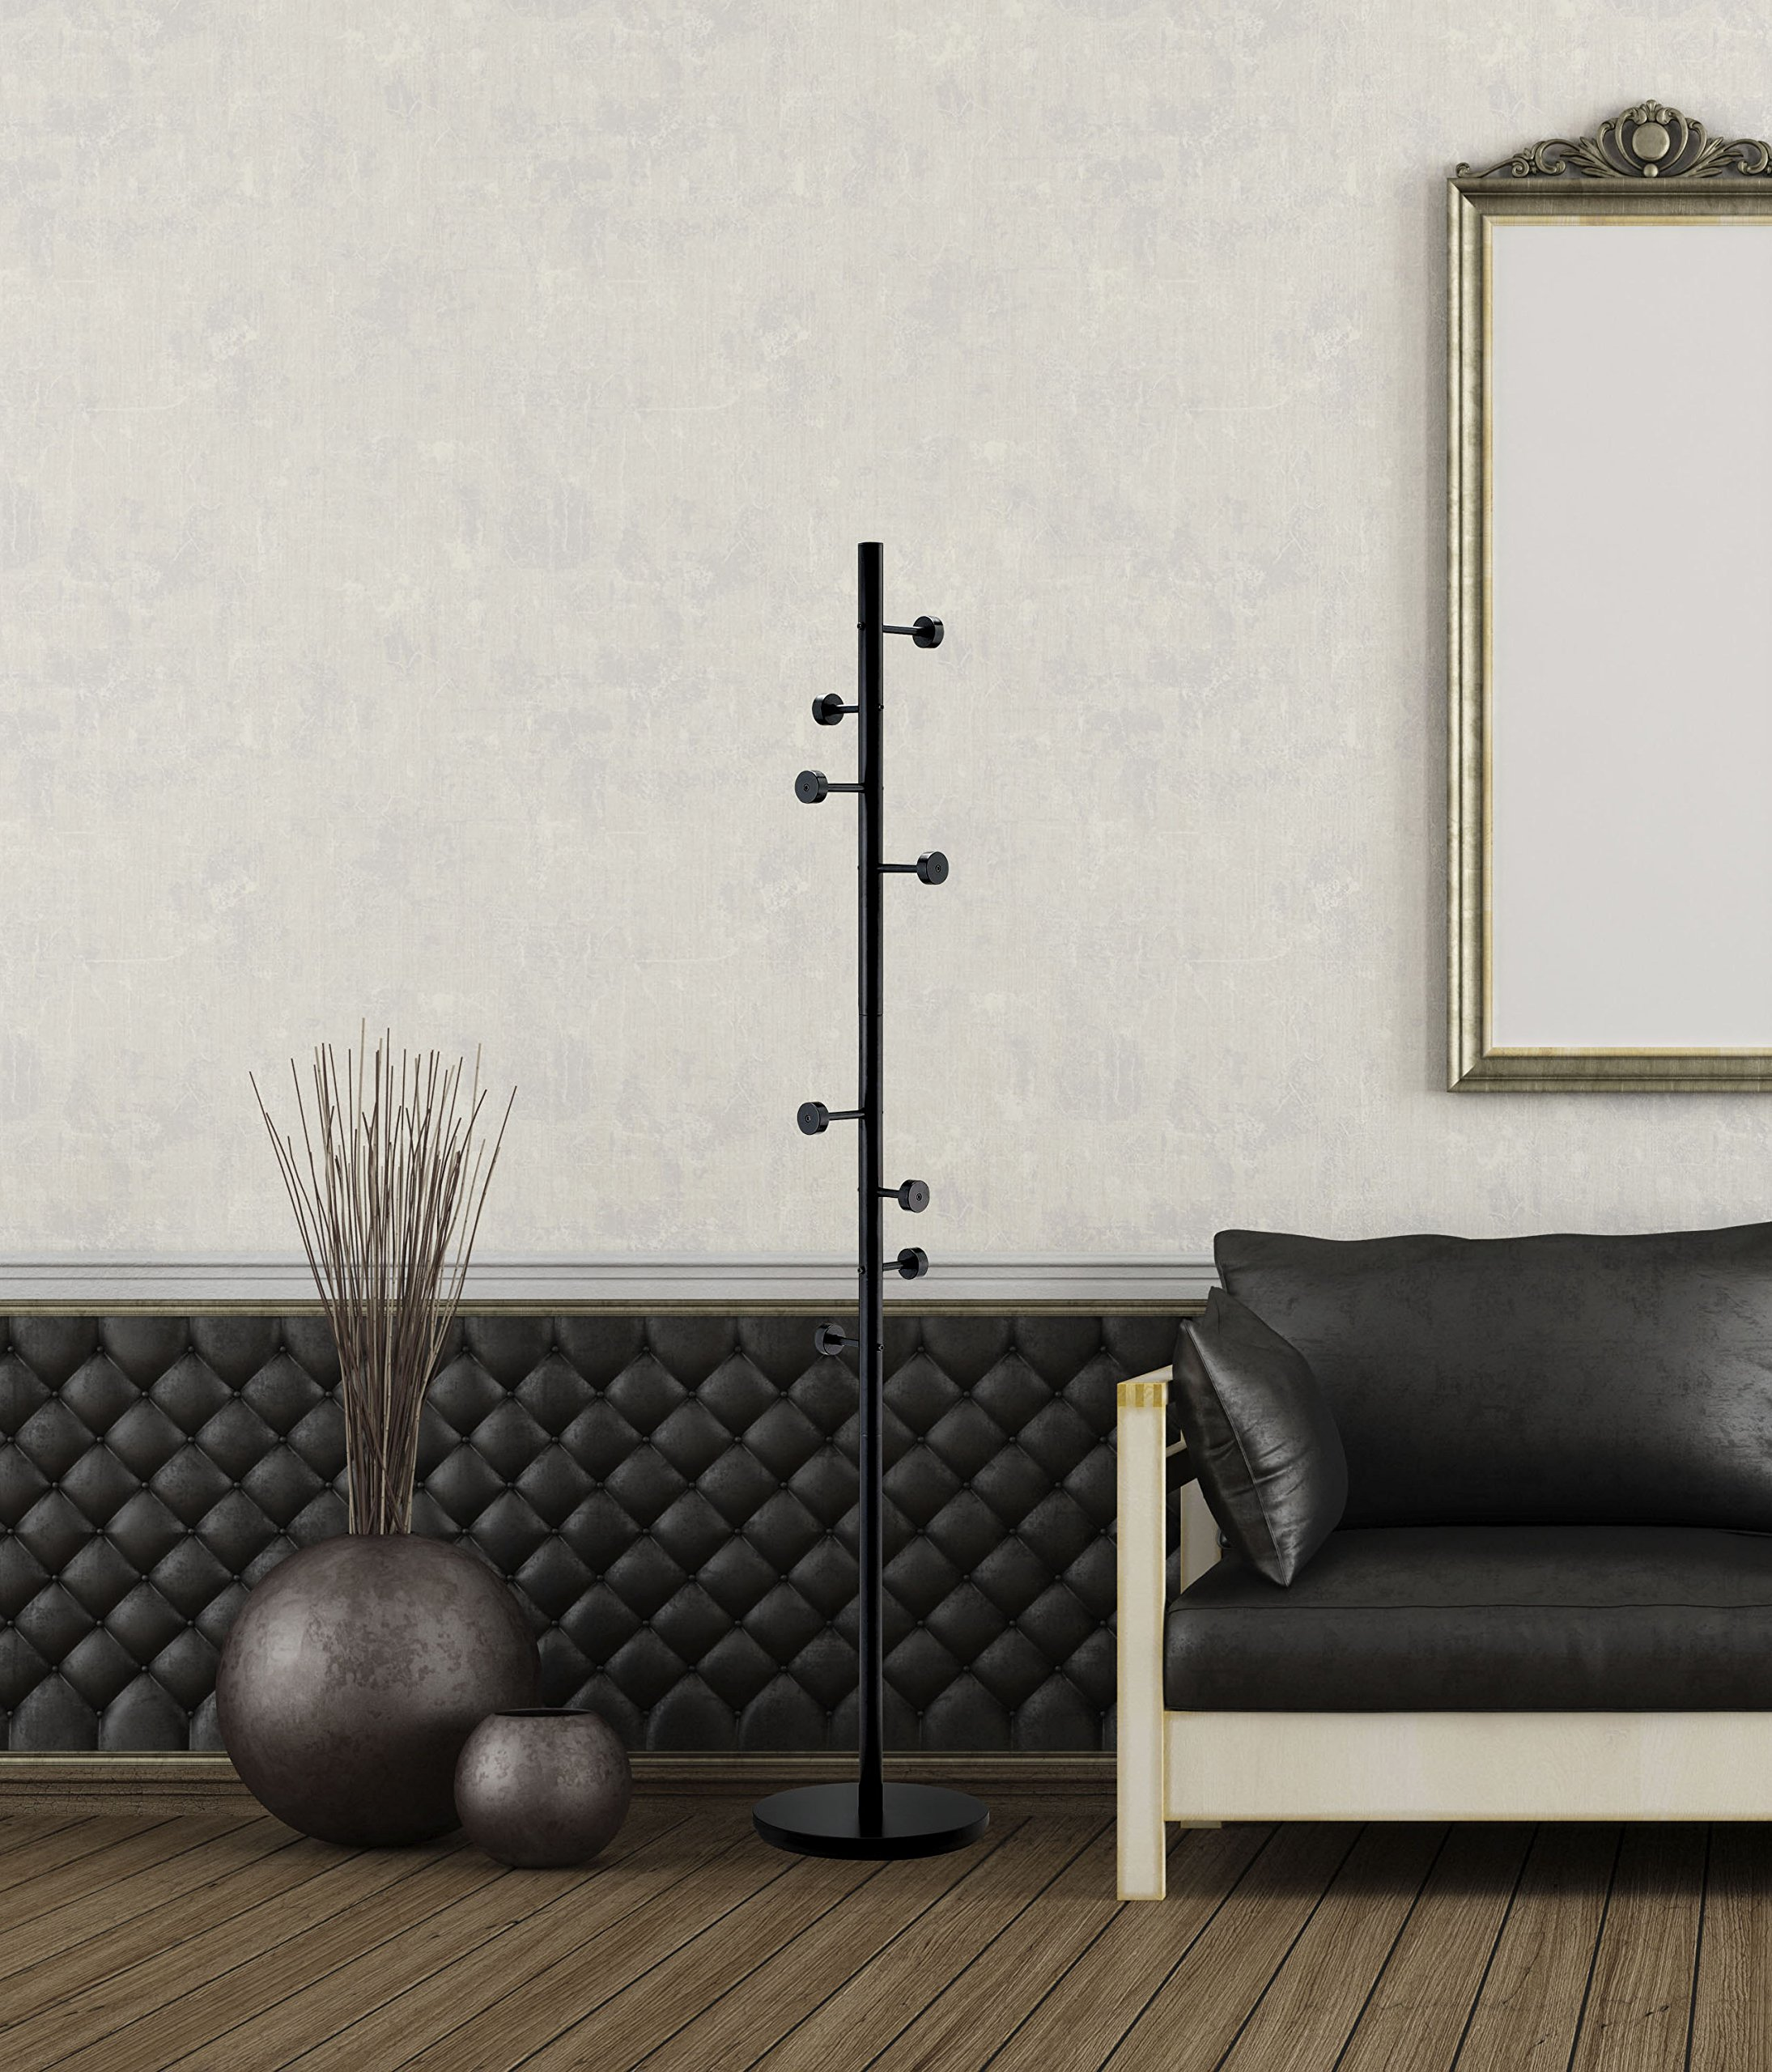 Adesso WK2030-22 Swizzle Coat Rack, Satin Steel Finish with Black Hooks by Adesso